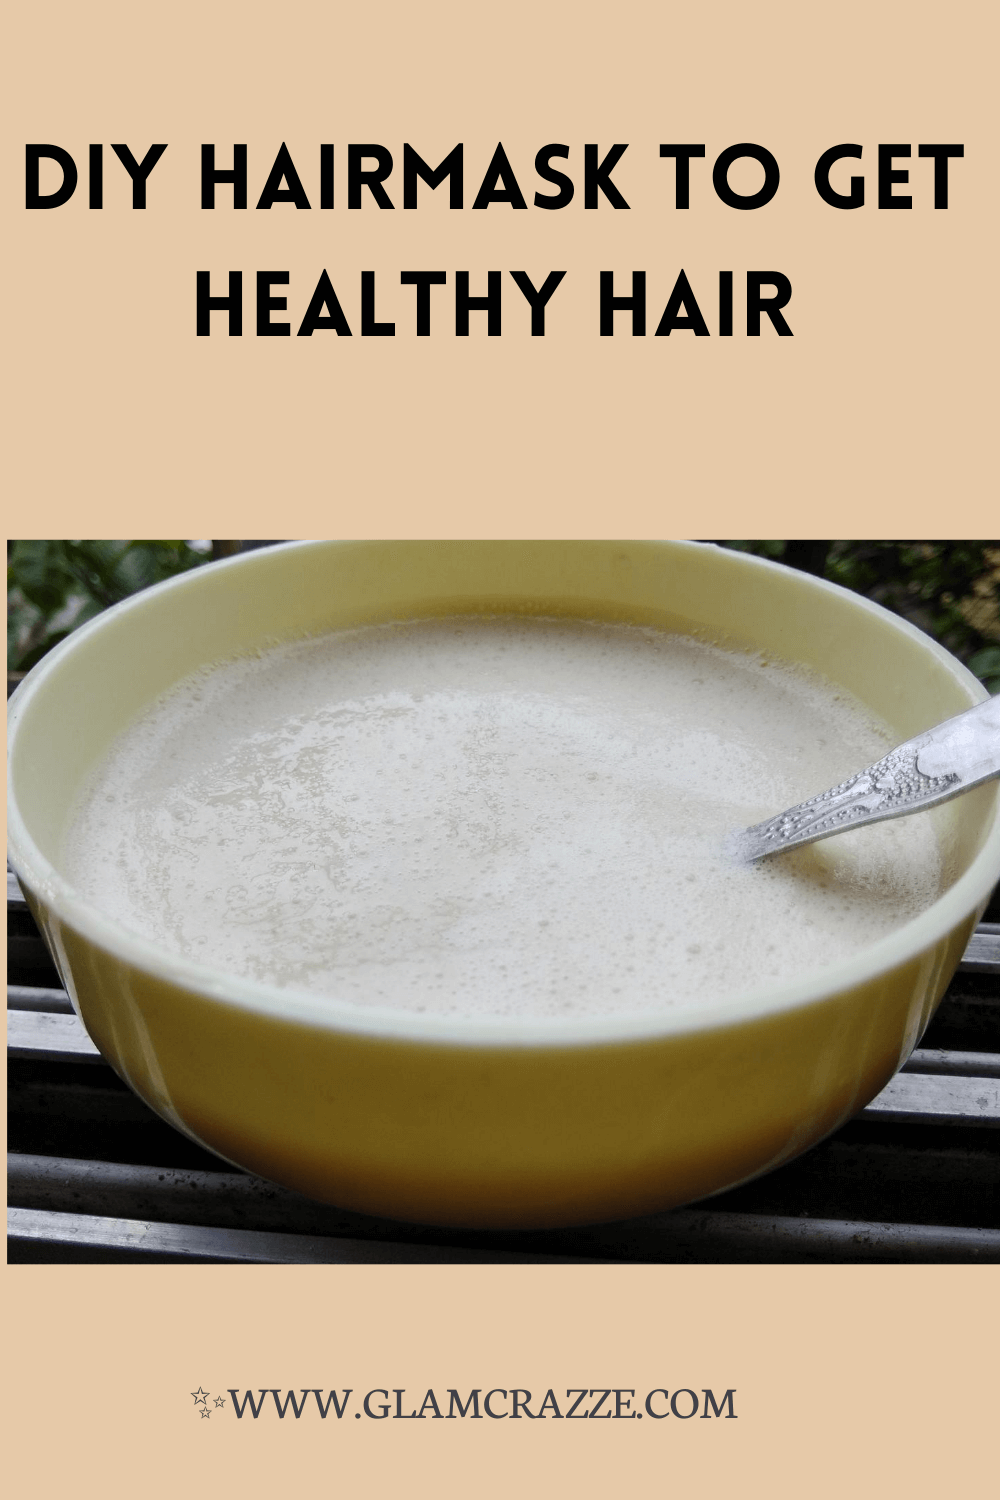 How to make your hair healthy with this egg diy hairmask